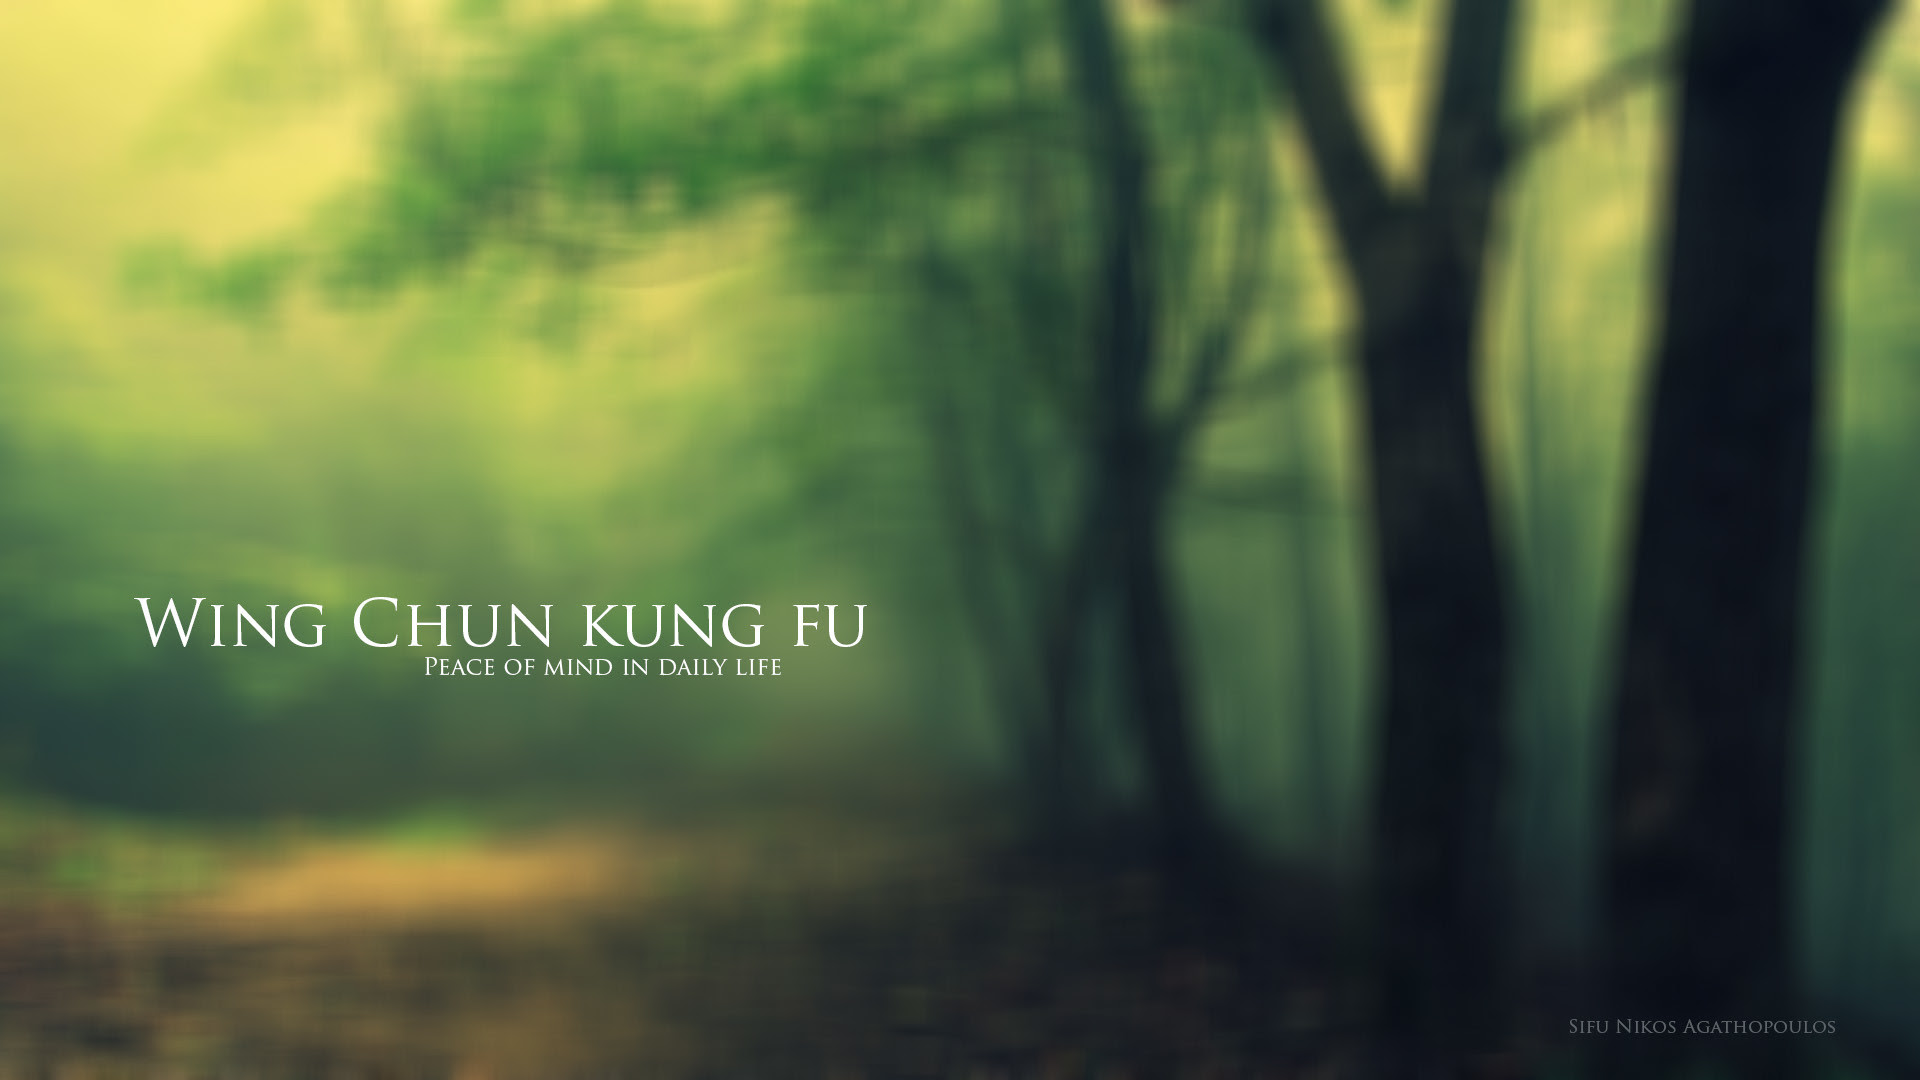 Wing Chun Kung Fu Wallpaper